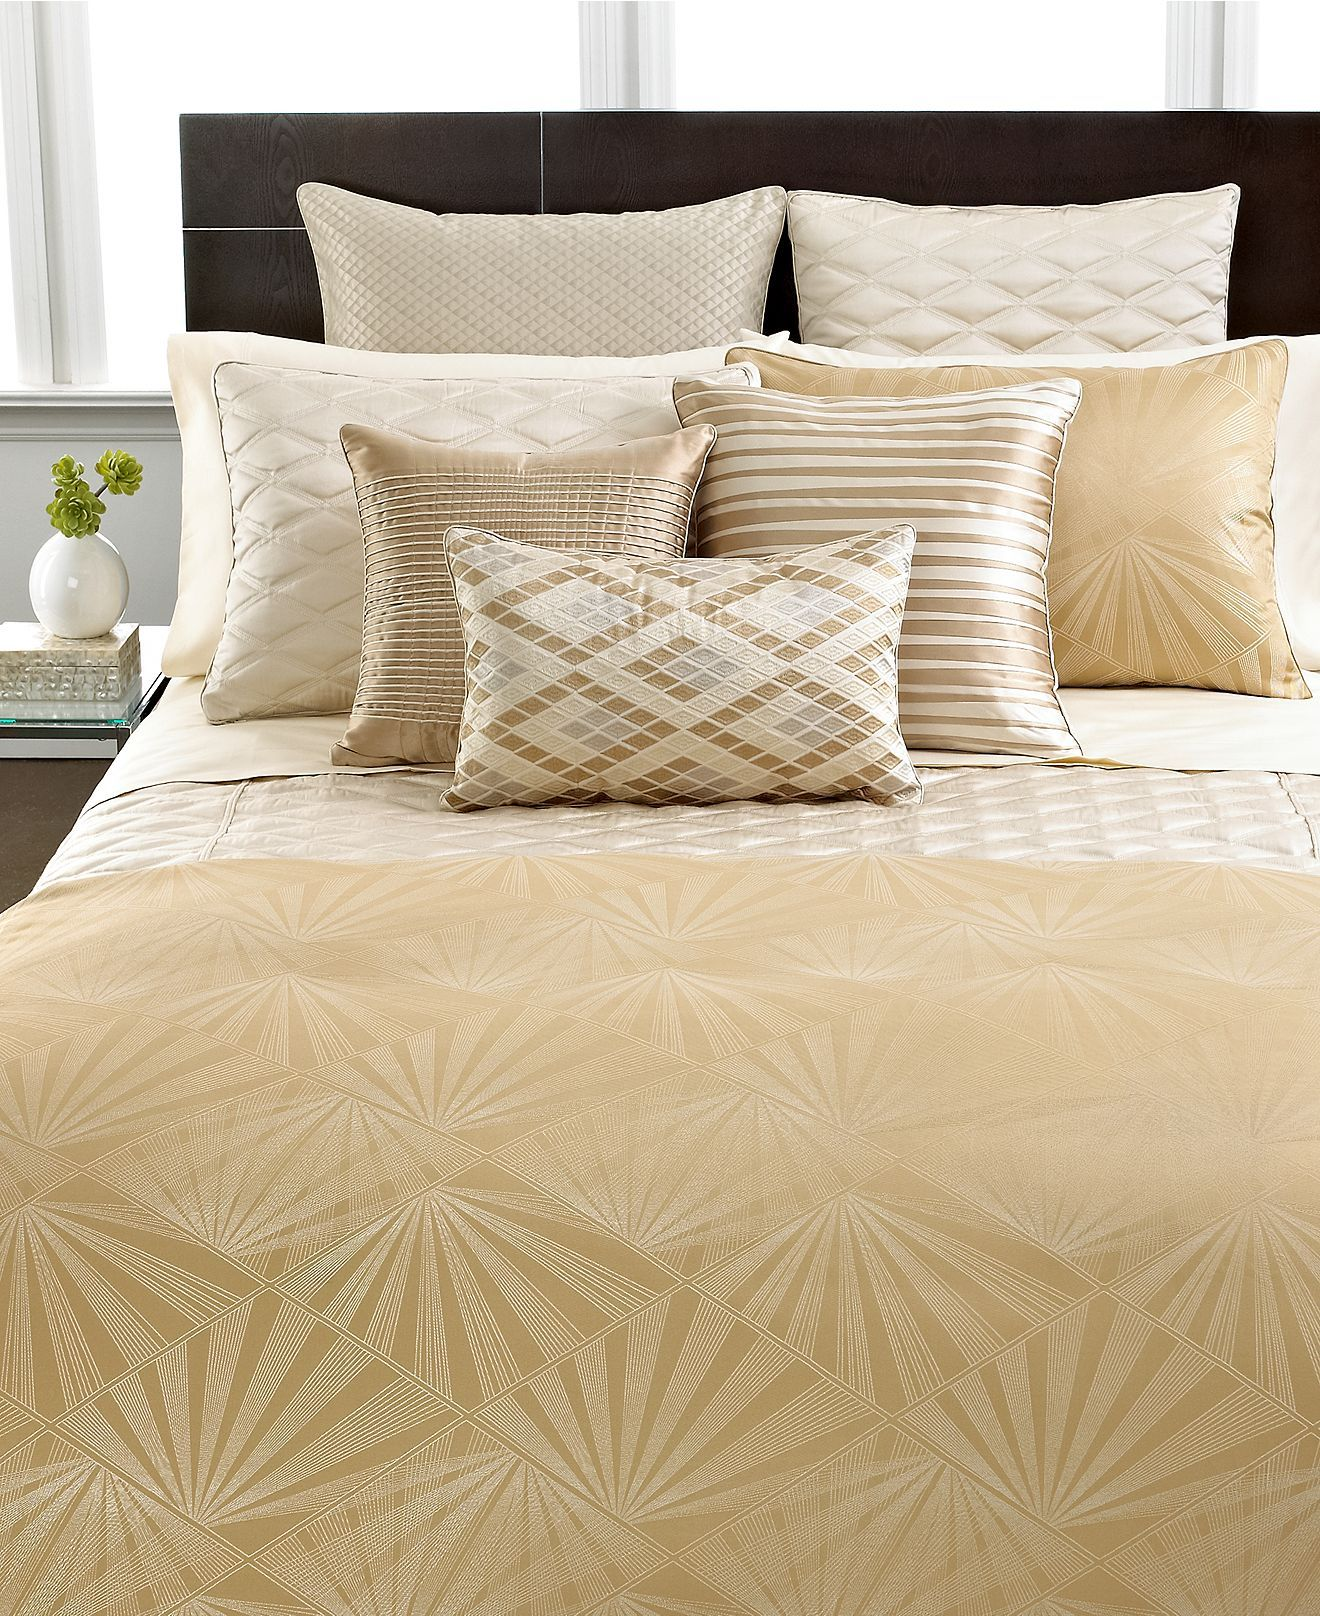 Hotel Collection Bedding Radiance Collection Bedding